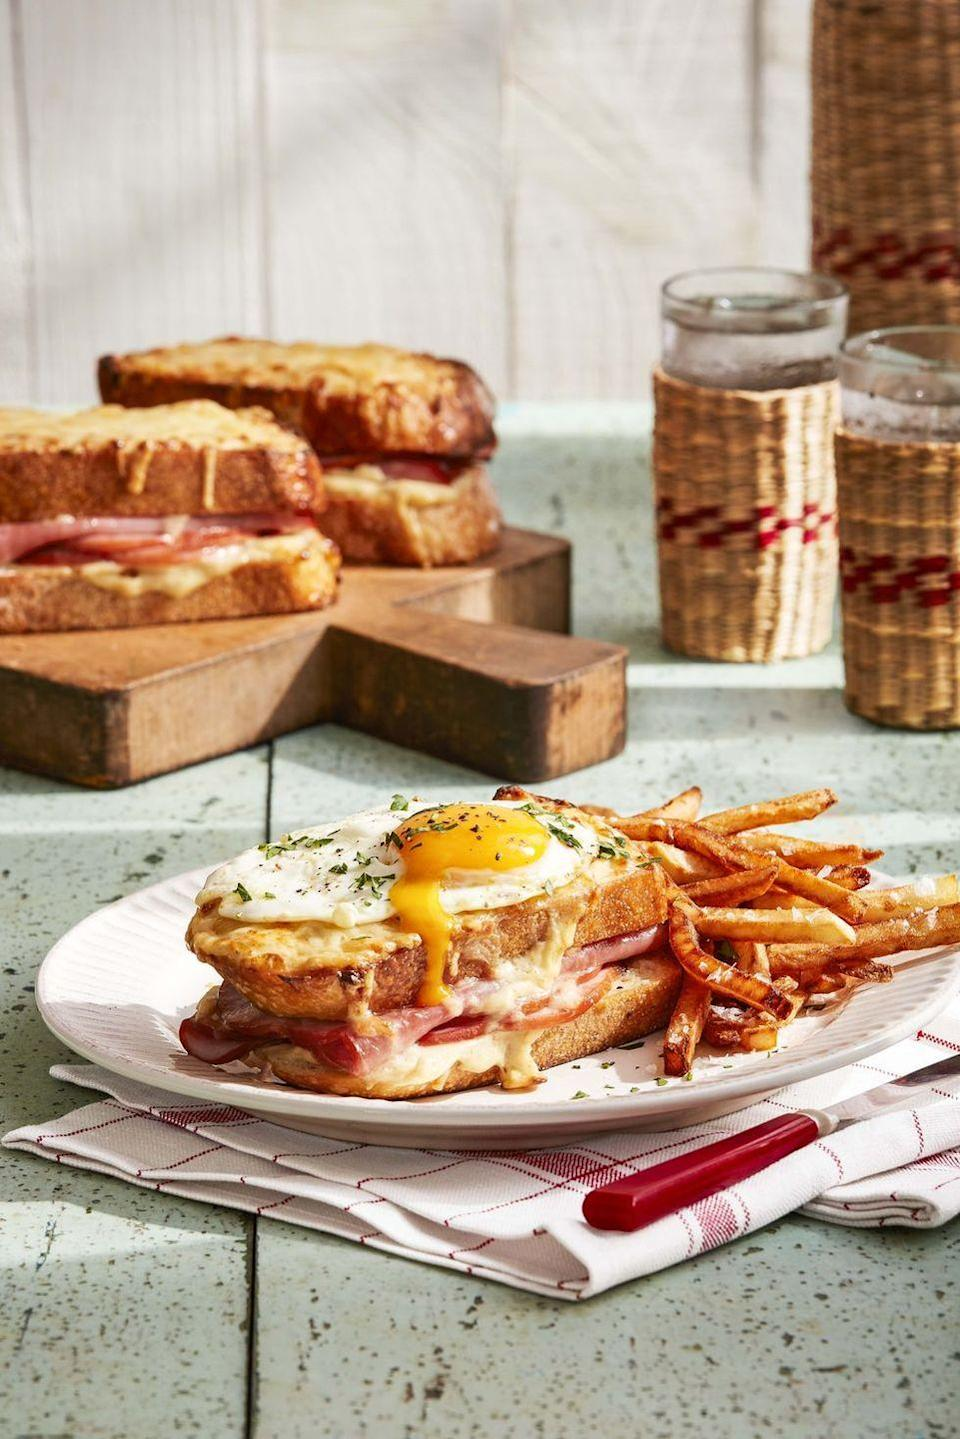 """<p>If you're feeding a more intimate crew and want to get fancy, try this luxe take on a standard ham and cheese. The combo of egg yolk, salty ham, and toasty sourdough is intensely satisfying. <a href=""""https://www.countryliving.com/food-drinks/a32042684/croque-madames/"""" rel=""""nofollow noopener"""" target=""""_blank"""" data-ylk=""""slk:"""" class=""""link rapid-noclick-resp""""><strong><br></strong></a></p><p><strong><a href=""""https://www.countryliving.com/food-drinks/a32042684/croque-madames/"""" rel=""""nofollow noopener"""" target=""""_blank"""" data-ylk=""""slk:Get the recipe"""" class=""""link rapid-noclick-resp"""">Get the recipe</a>.</strong> </p>"""